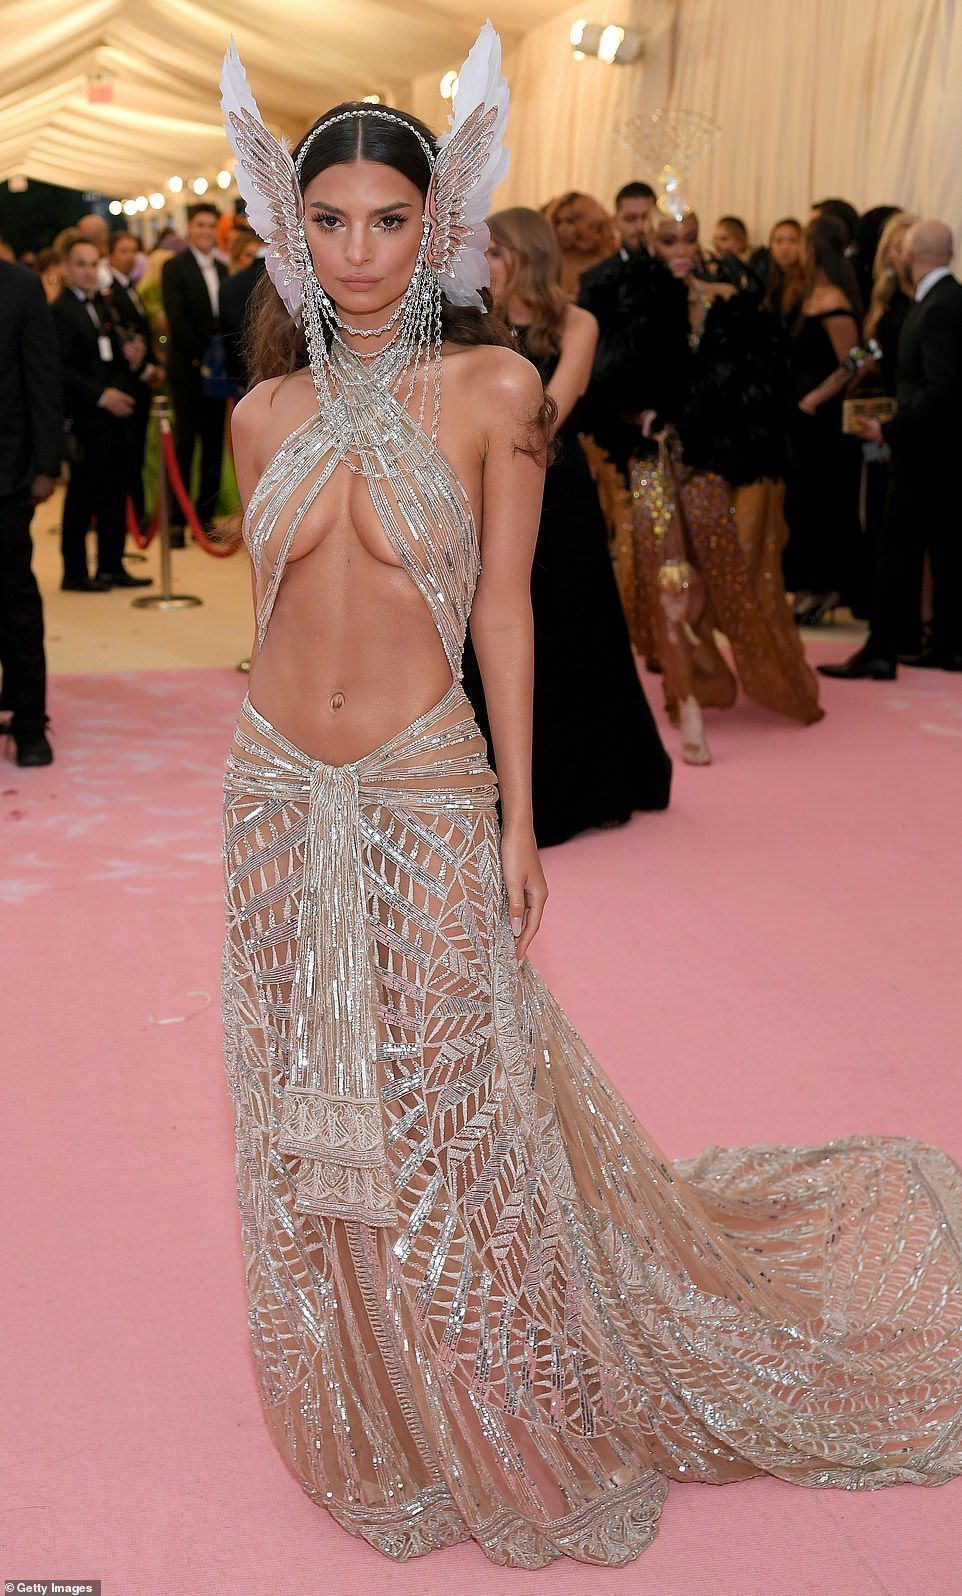 Dare To Bare Emily Ratajkowski Looked Even More Risque Than Ashley In Her Barely There Dr Emilyratajkowski Met Met Gala Dresses Gala Fashion Camp Fashion